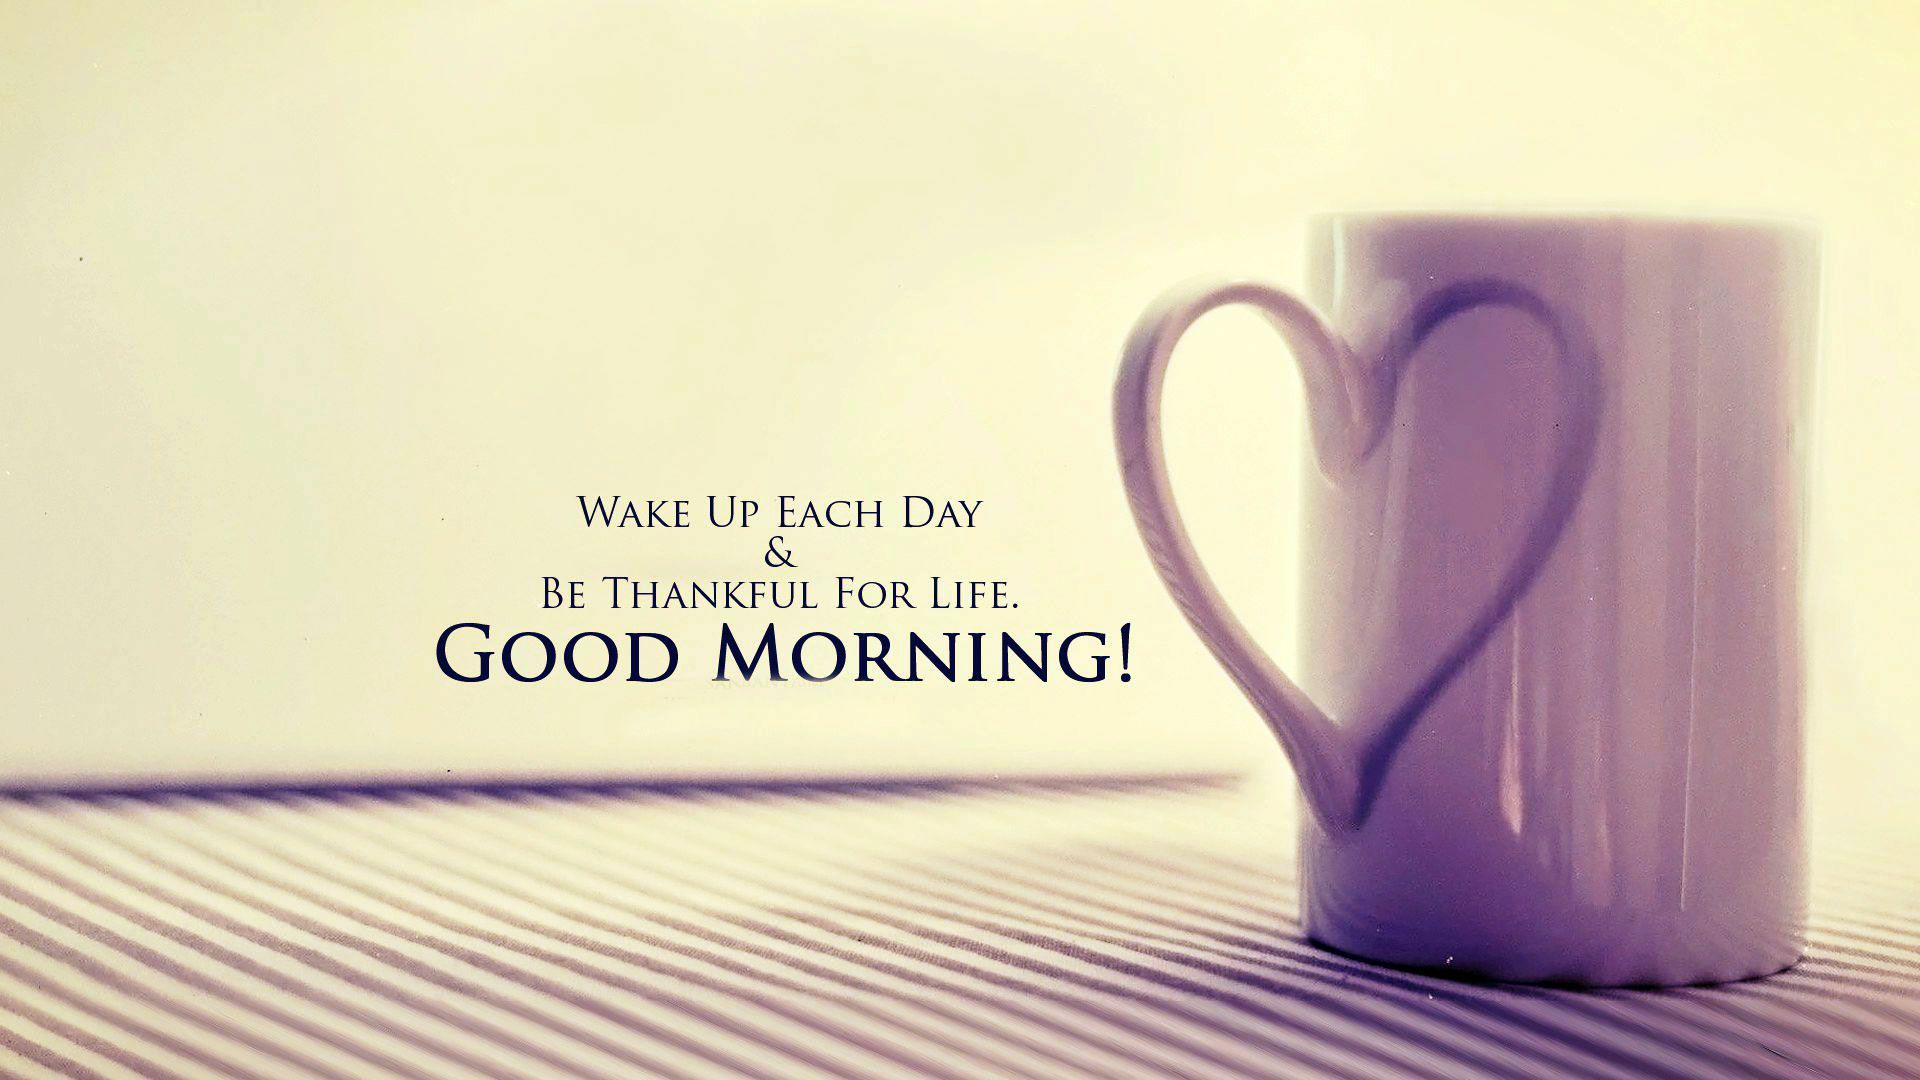 Download Wakeup Good Morning Cute Animations Good Night